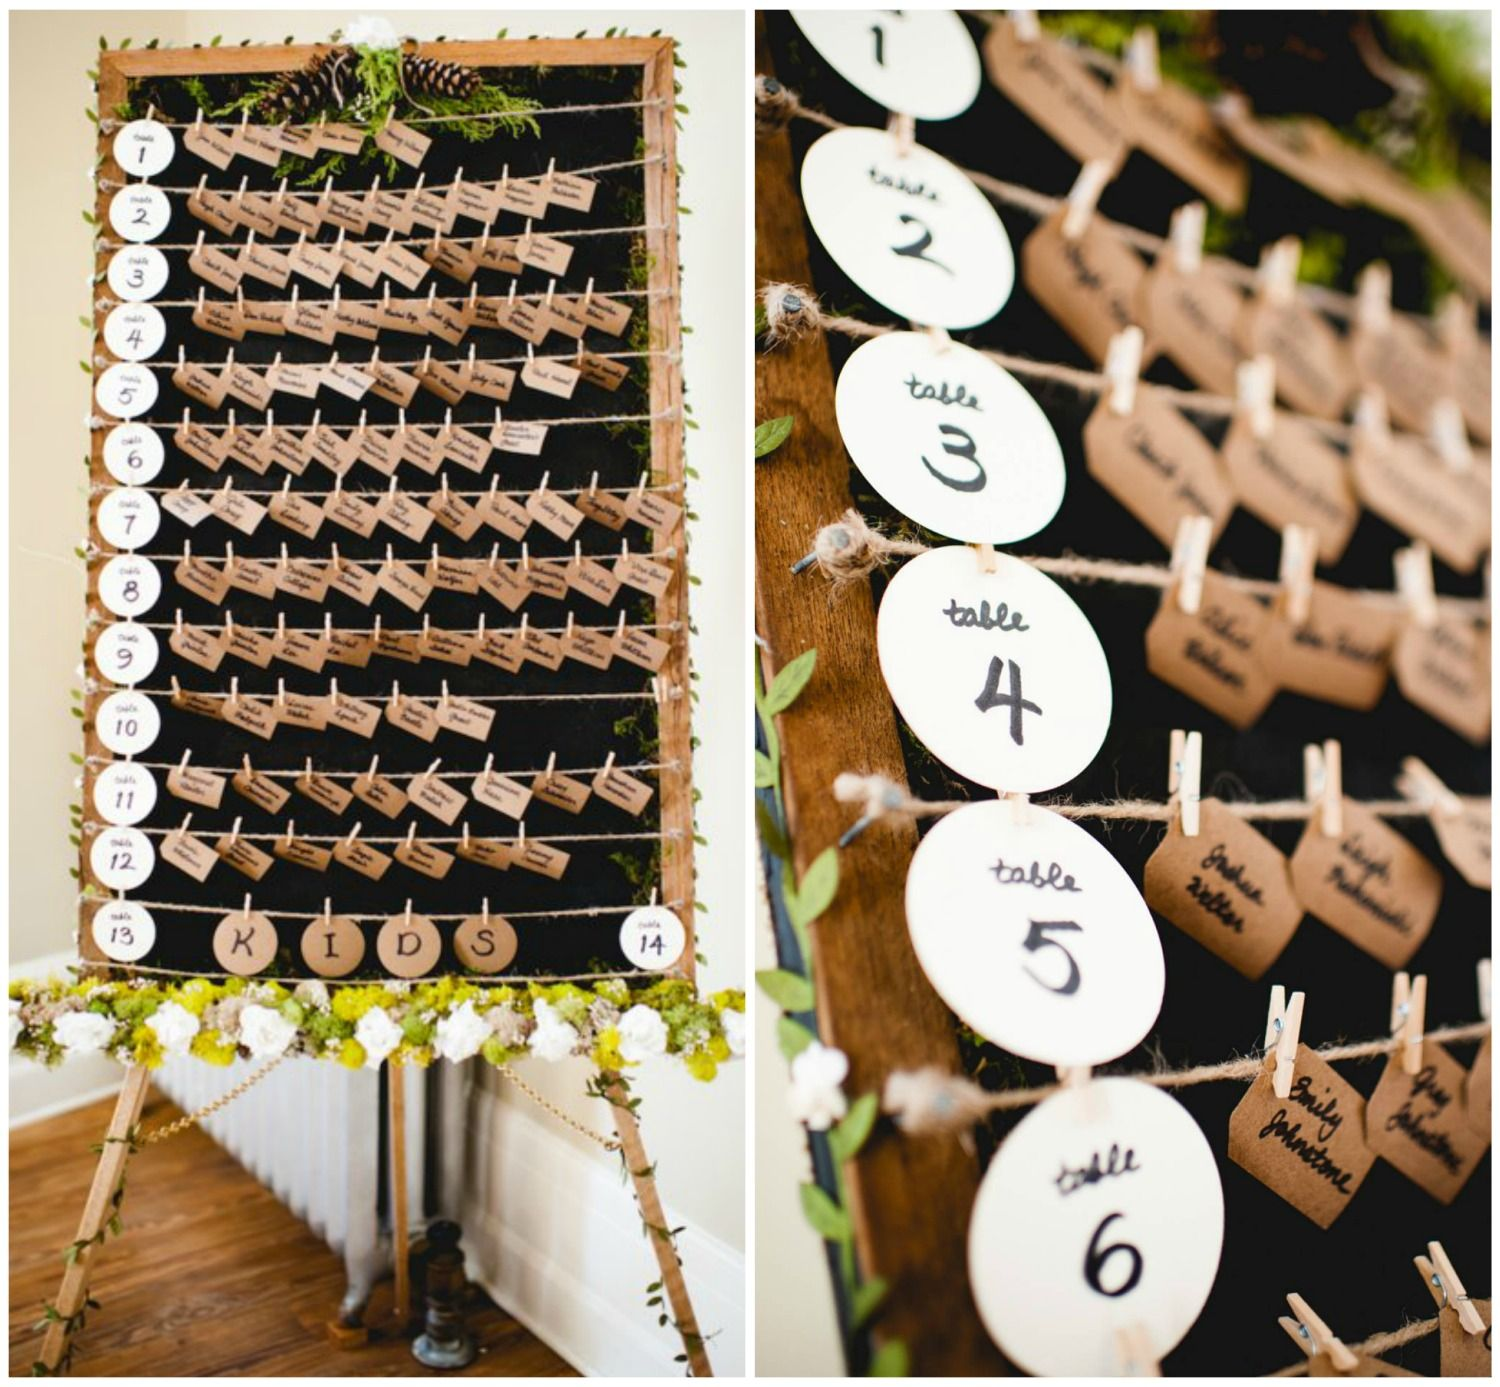 Rustic Wedding Seating Chart Ideas: Rustic Wedding Escort Card Display